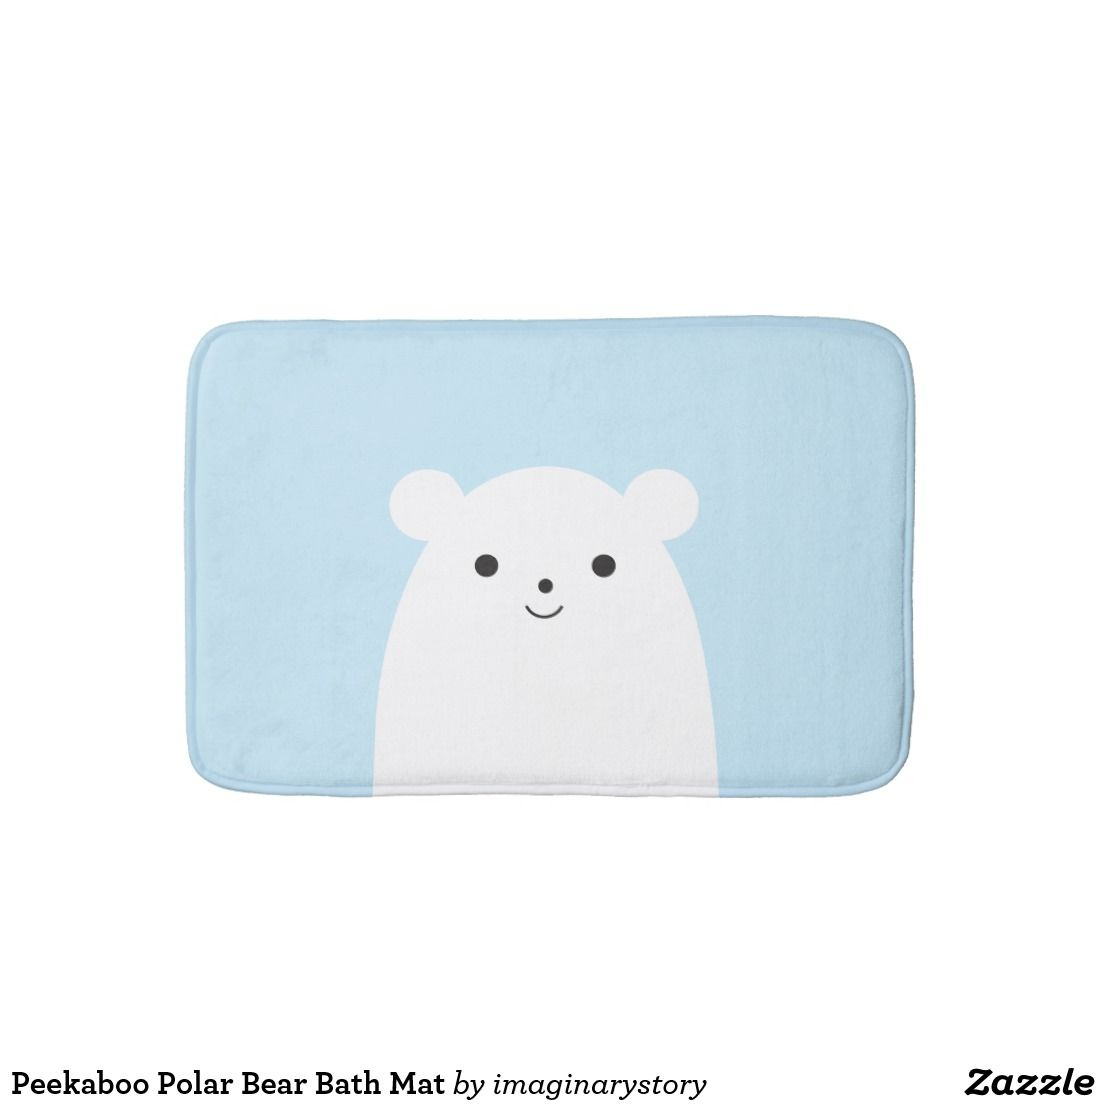 Peekaboo Polar Bear Bath Mat Zazzle Com Polar Bear Personalized Bath Mats Small Bath Mat